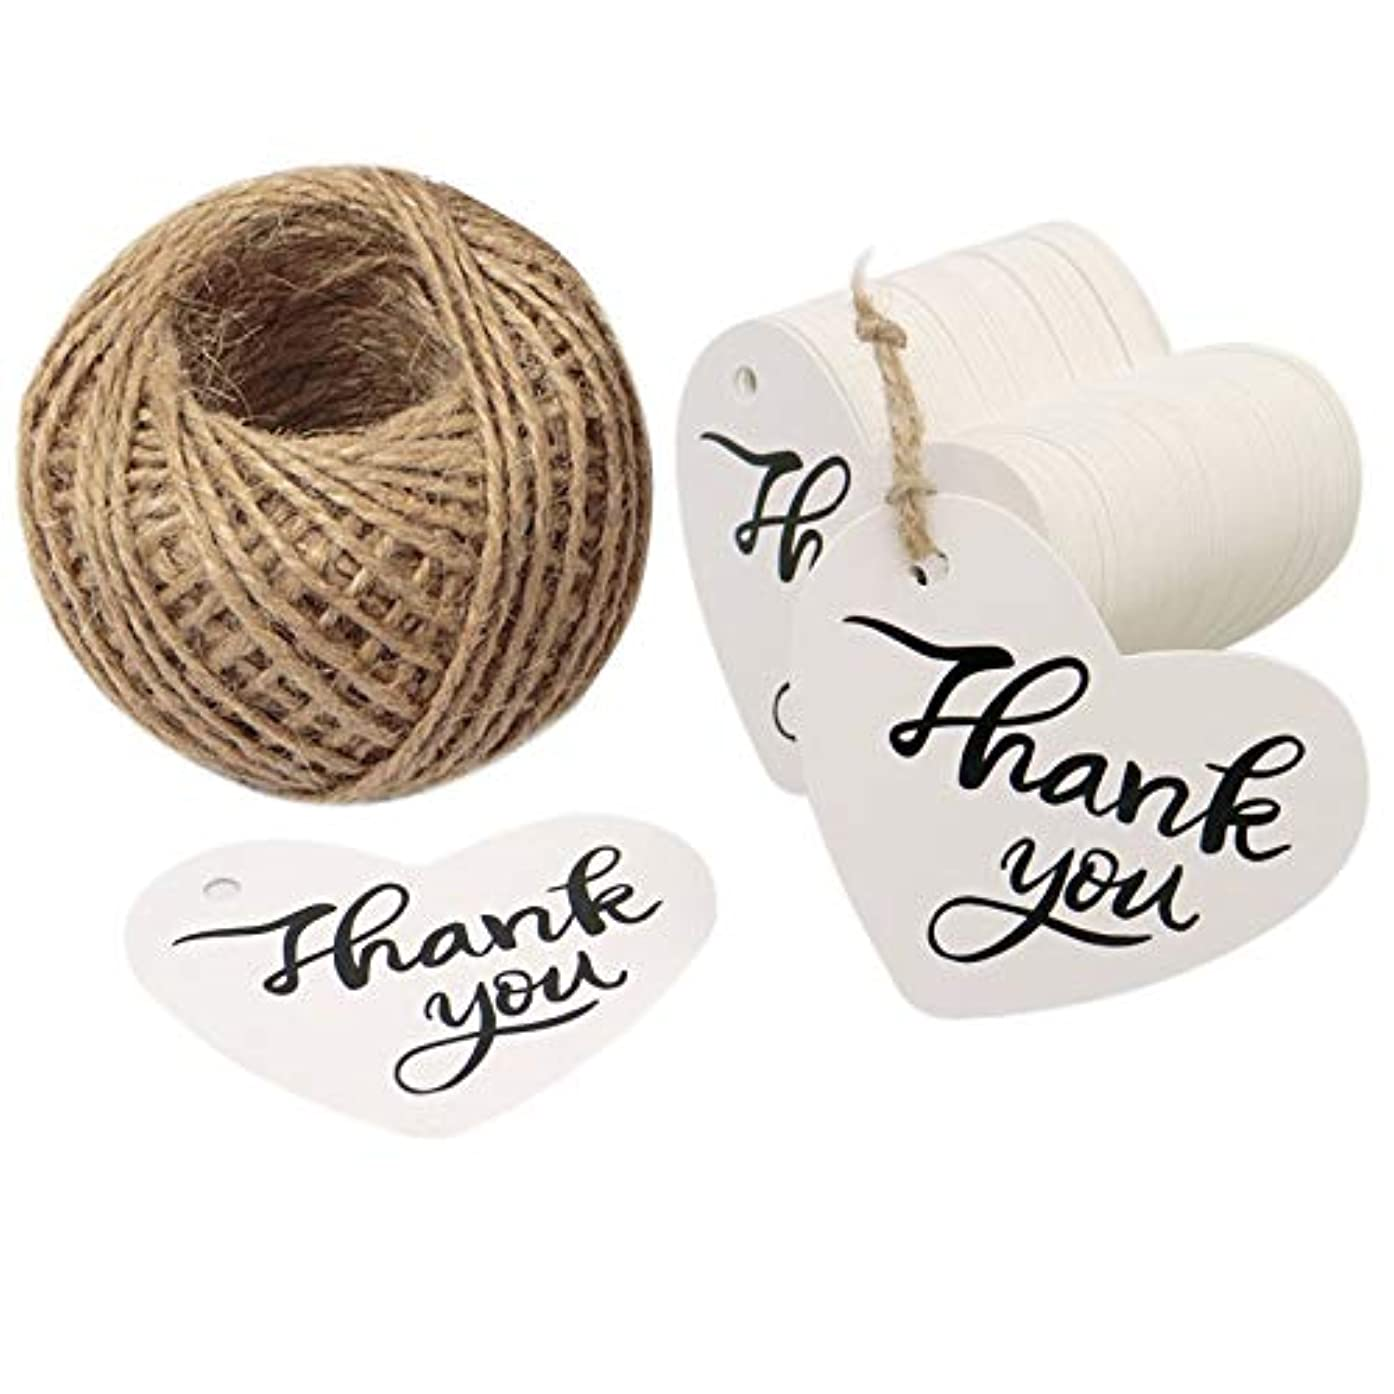 Thank You Tags,100 Pcs Kraft Paper White Gift Tags for Wedding Favor Party Tags with 100 Feet Jute Twine